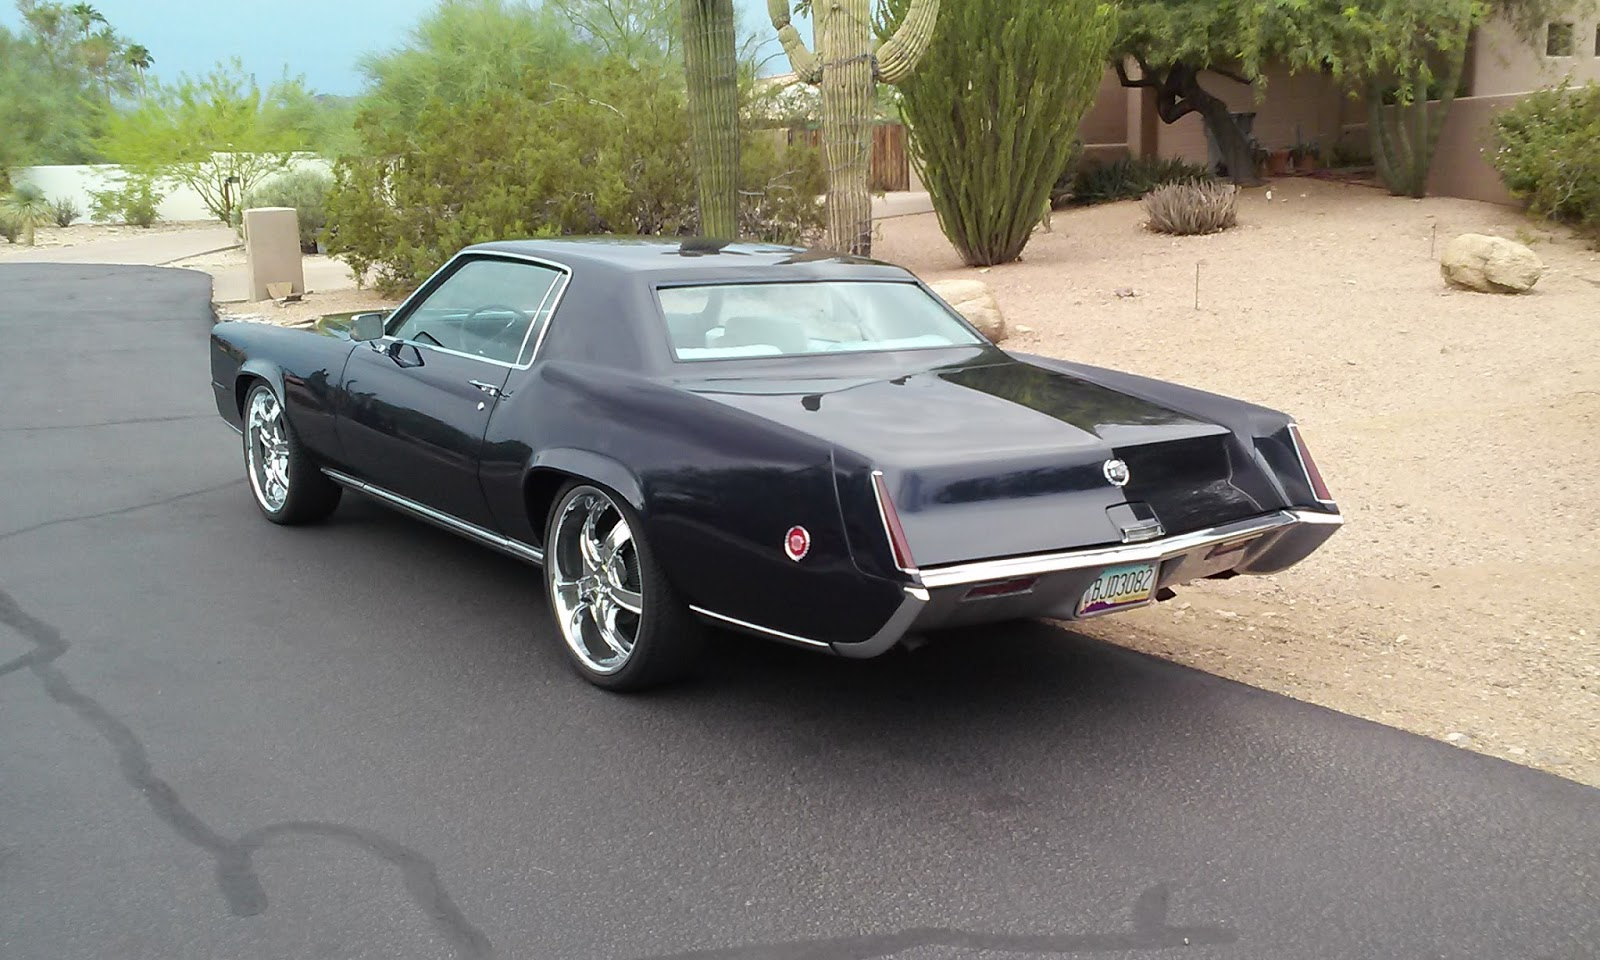 1970 cadillac eldorado classic cars for sale from the crawdaddy. Black Bedroom Furniture Sets. Home Design Ideas